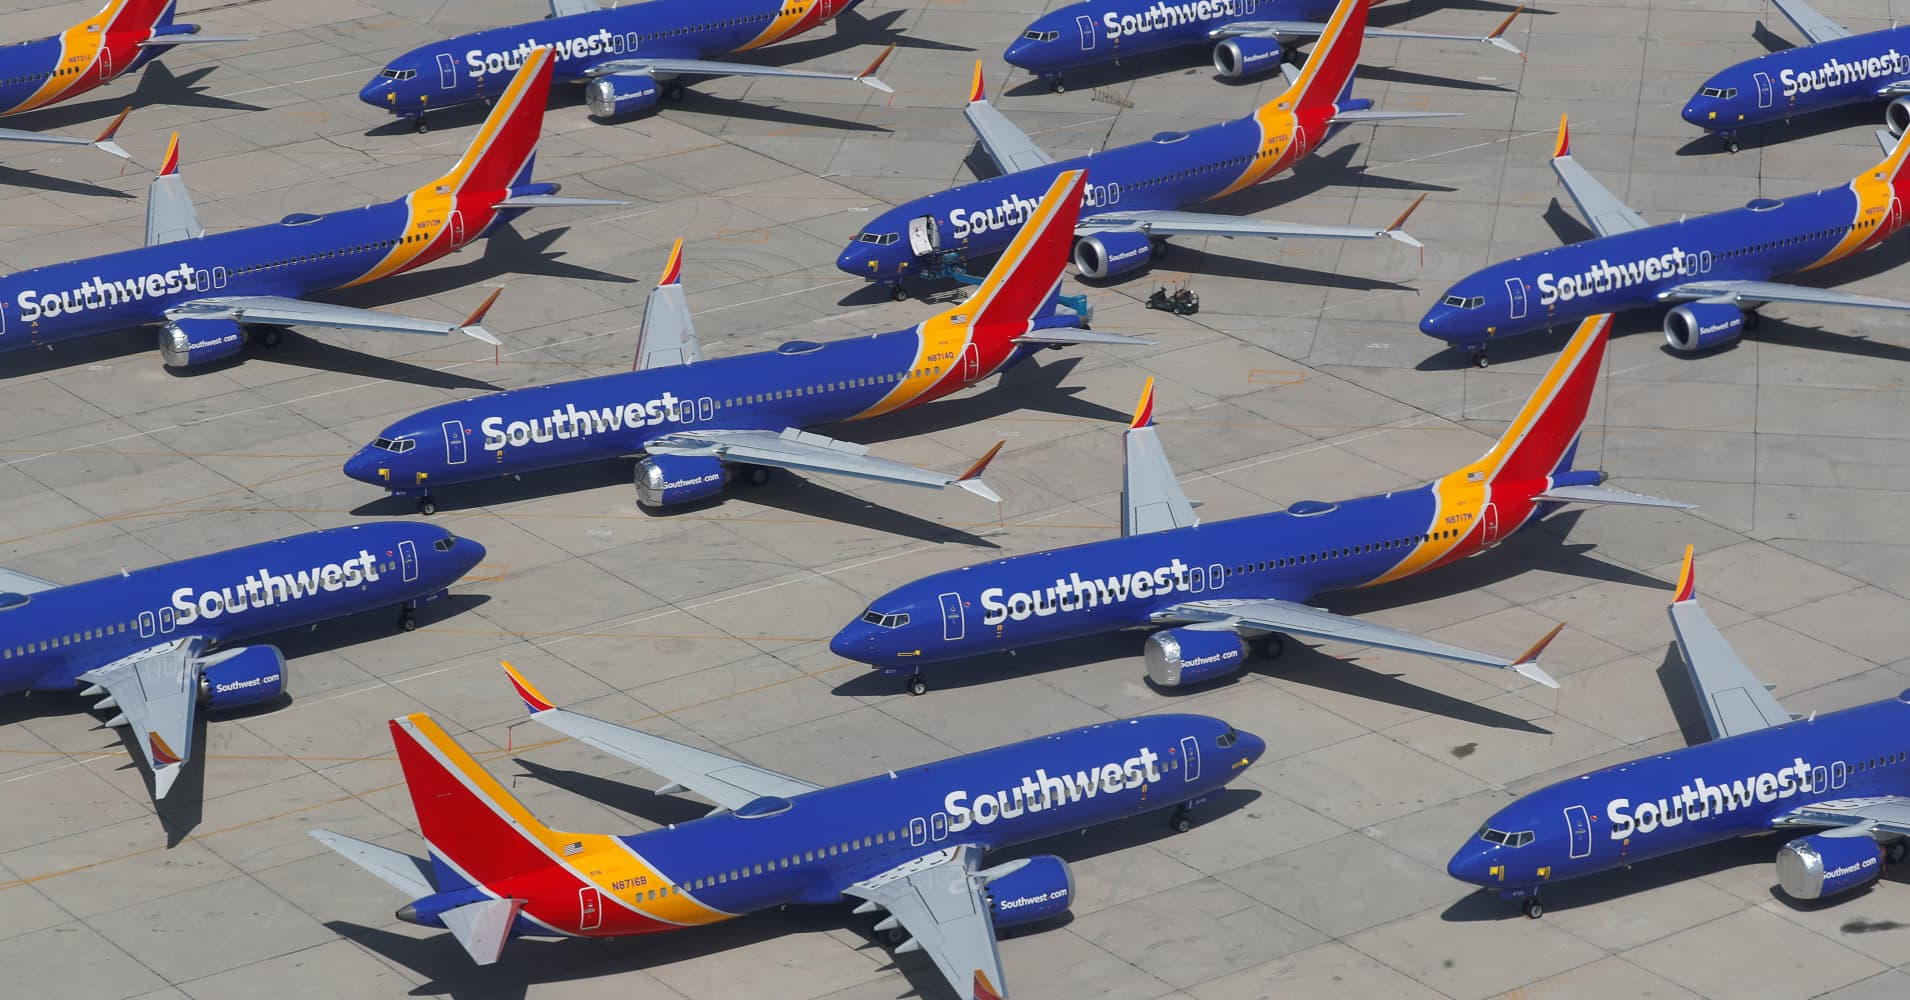 Southwest cuts revenue outlook on Boeing 737 Max groundings